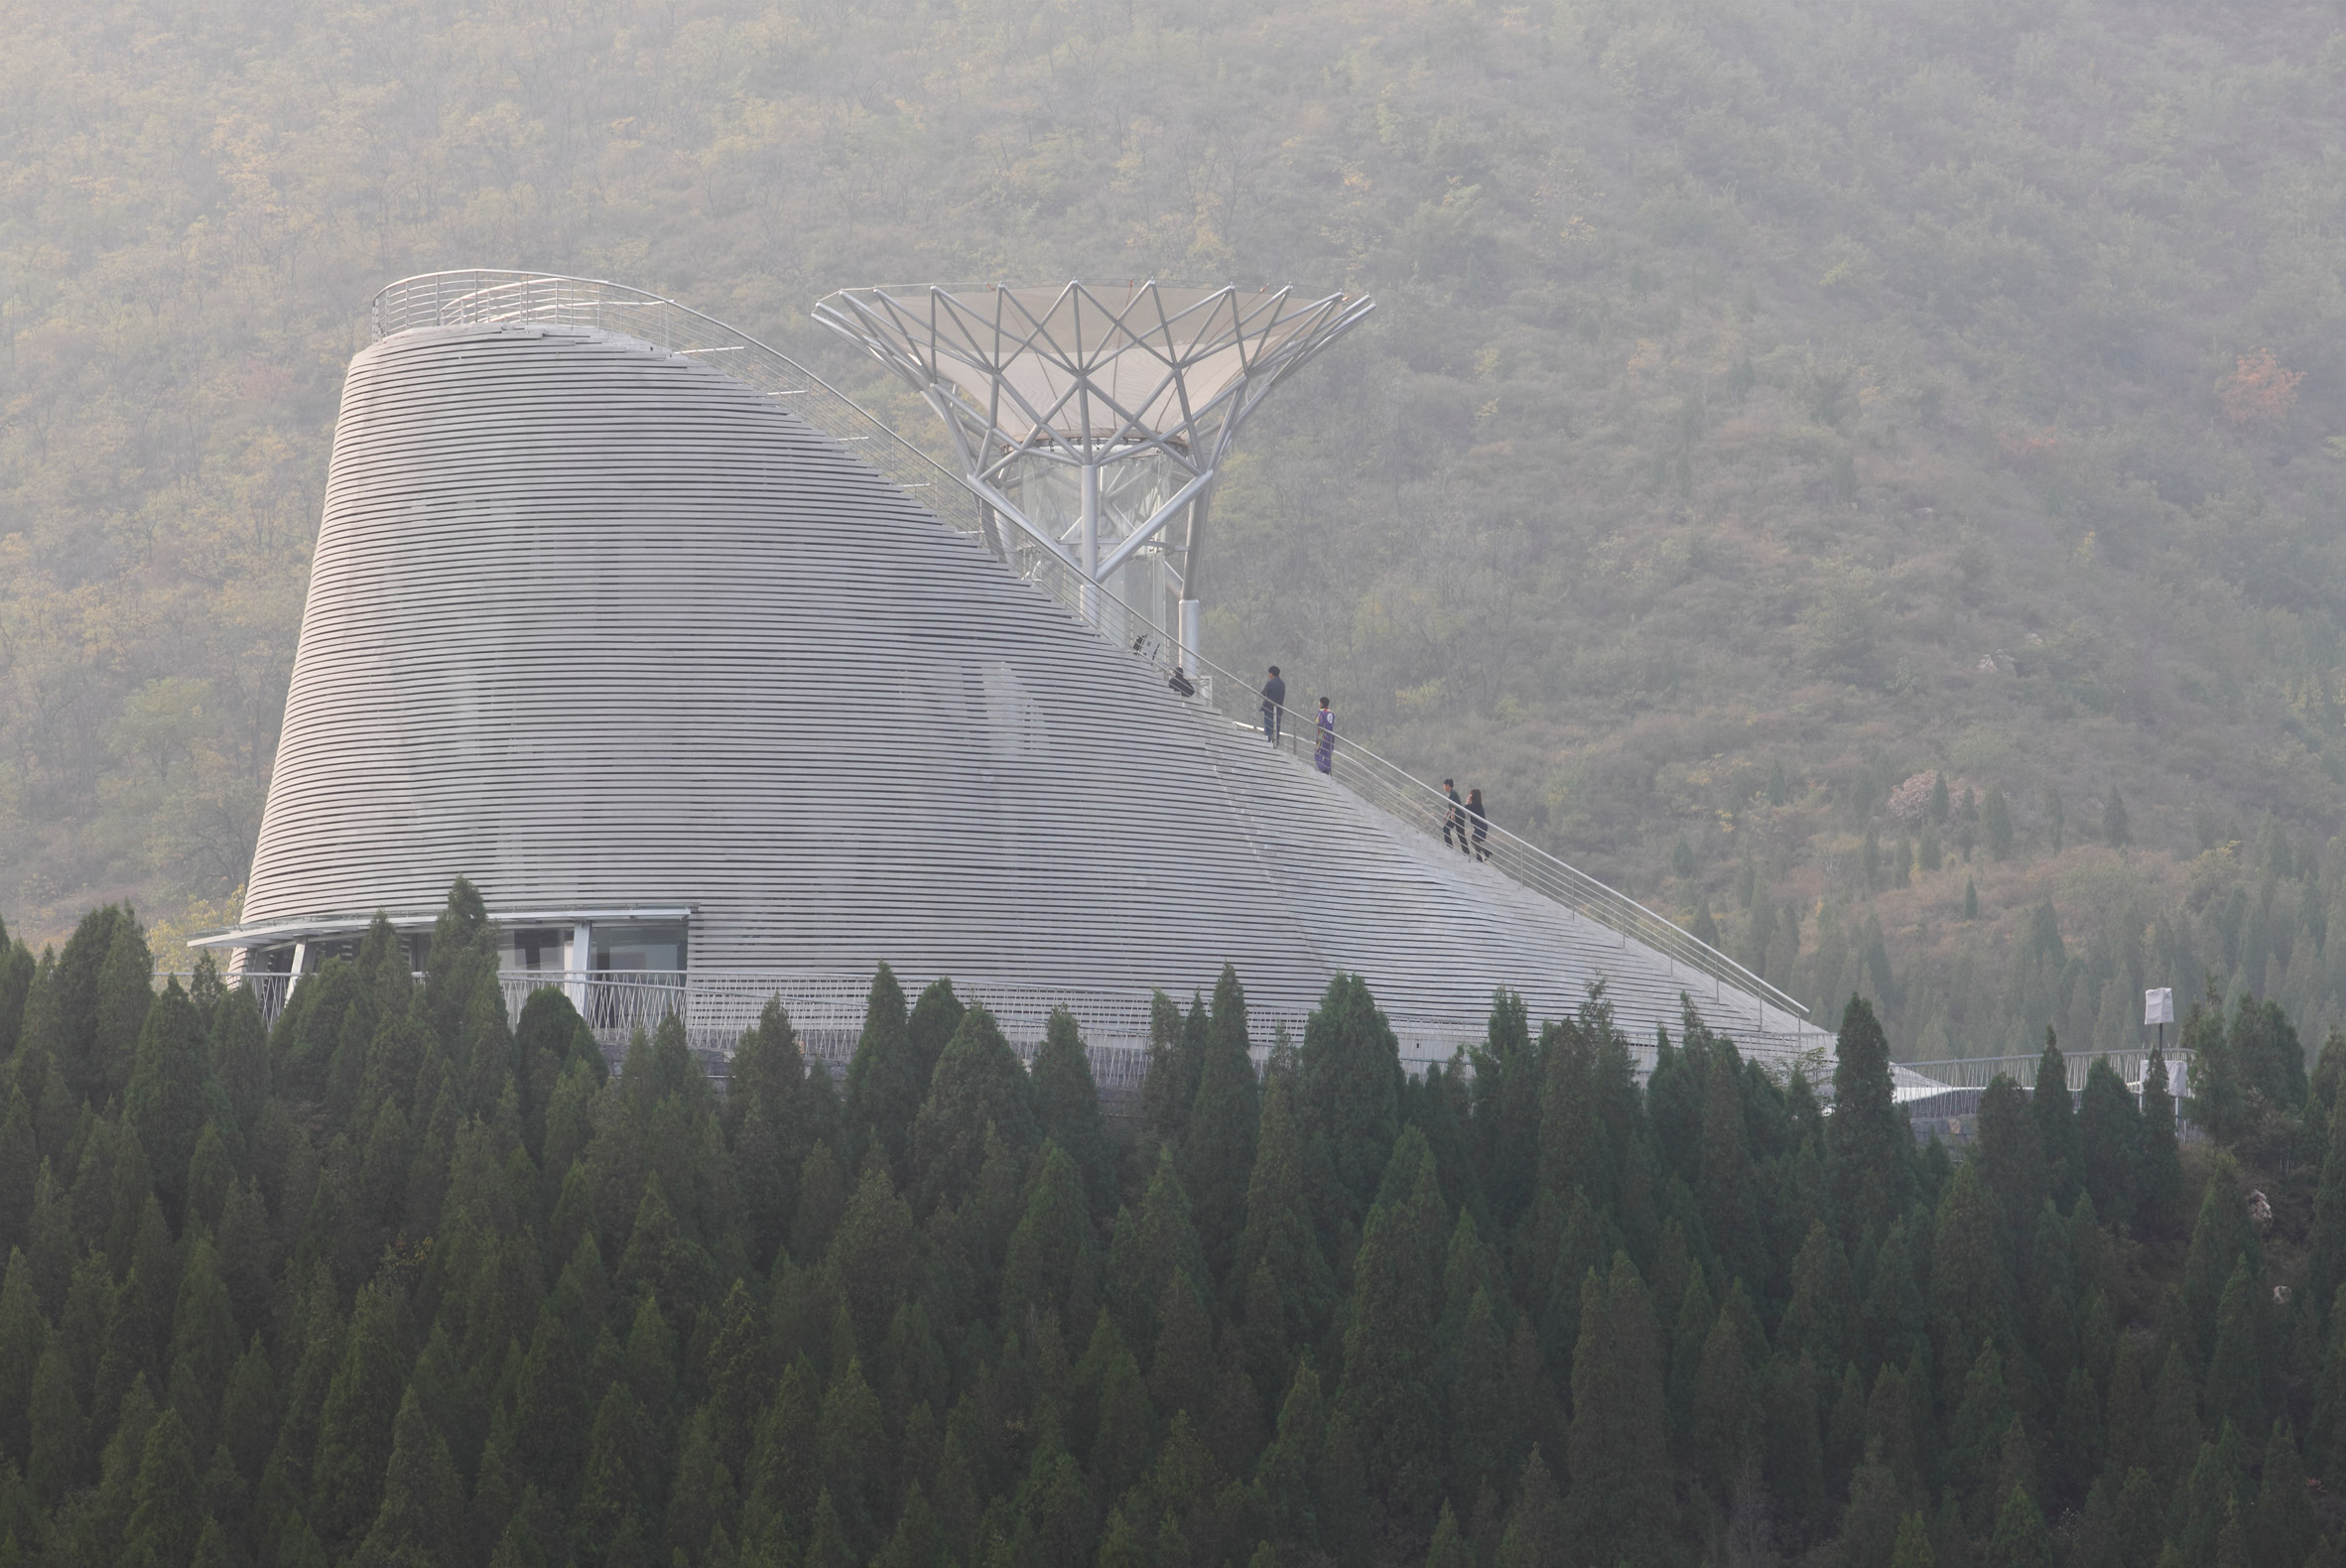 Wind tunnel allows monks to fly above Mailītis Architects' amphitheatre in rural China